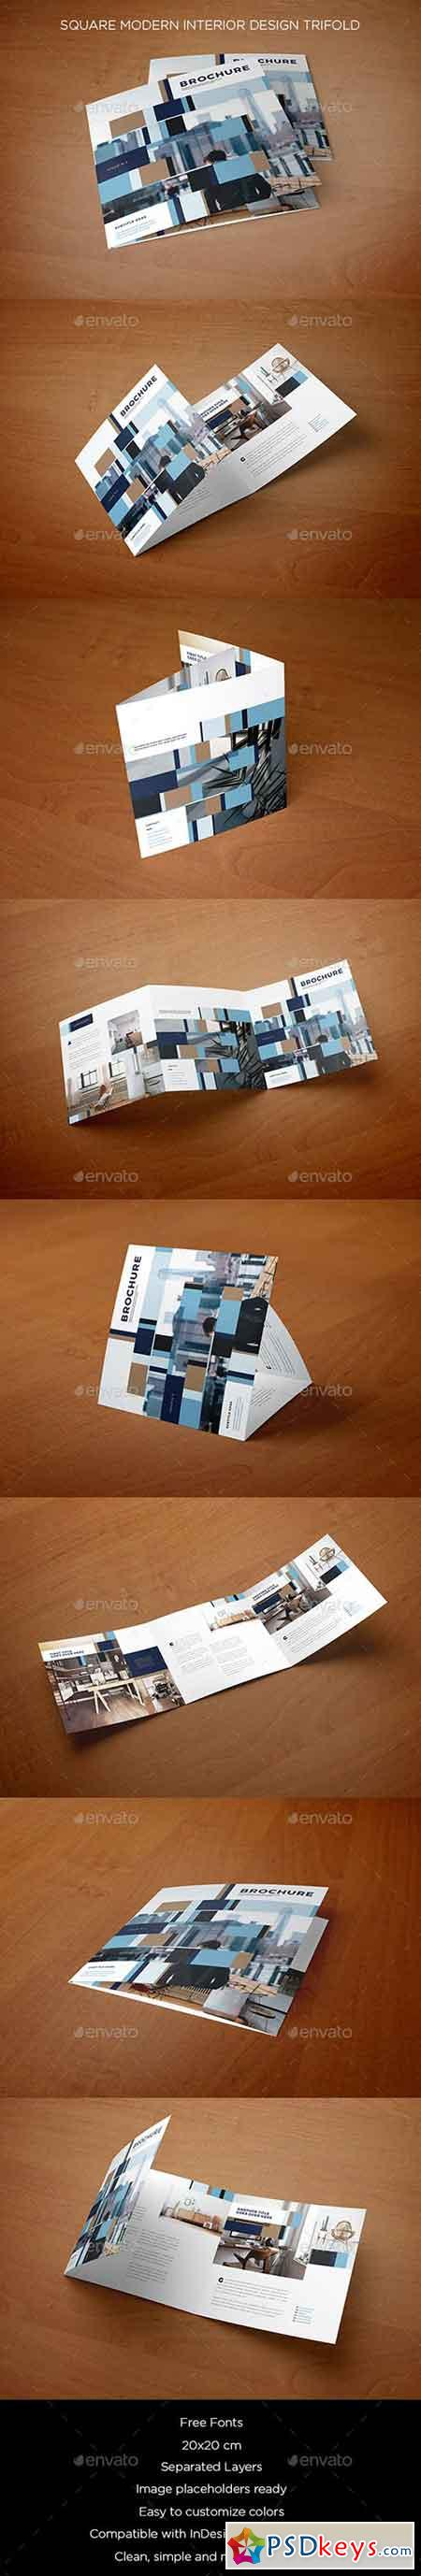 Square Modern Interior Design Trifold 17840758